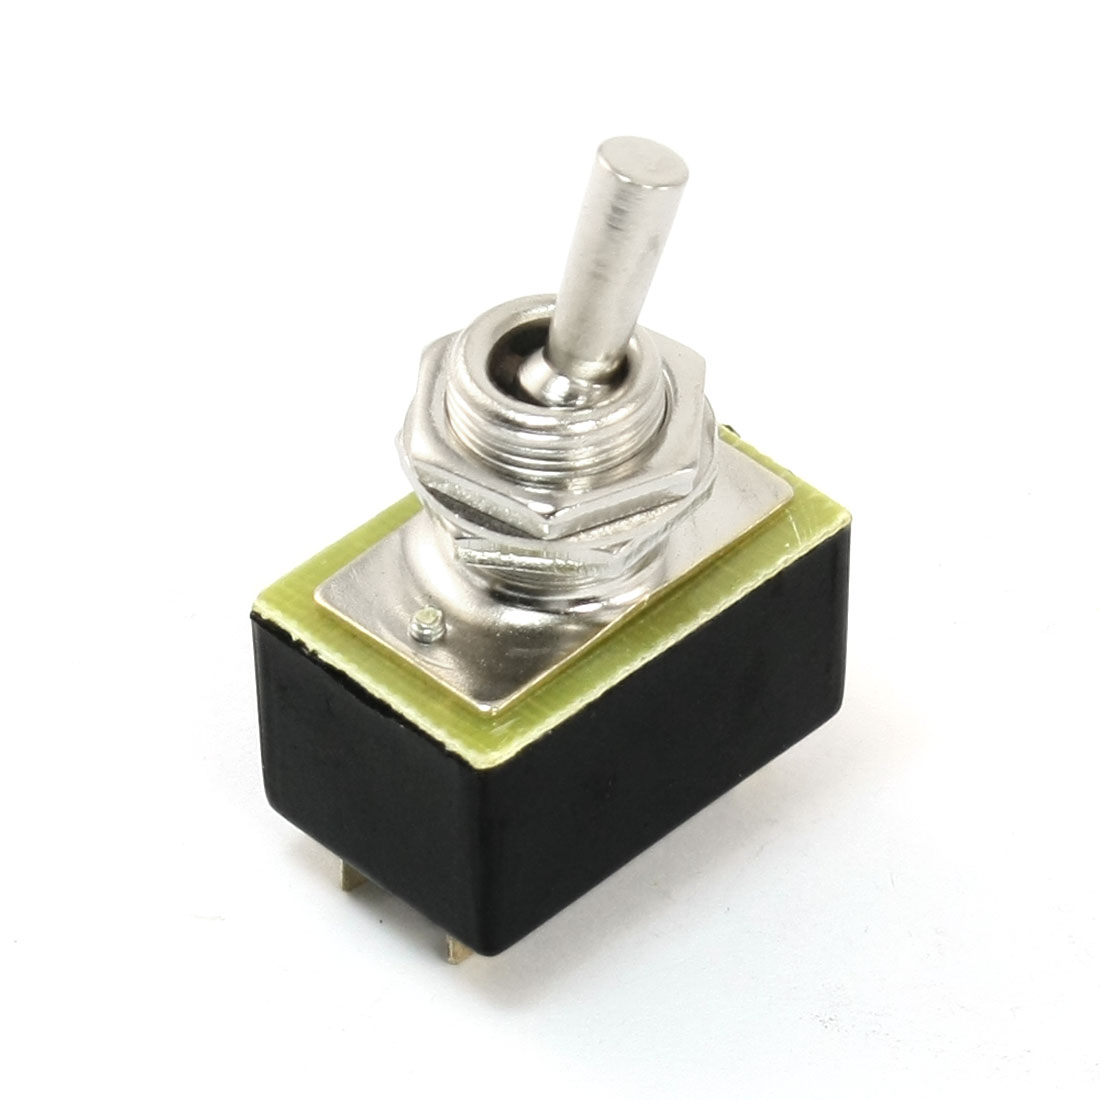 3A 220VDC 6A 110VDC DPST Latching 2 Position Toggle Switch